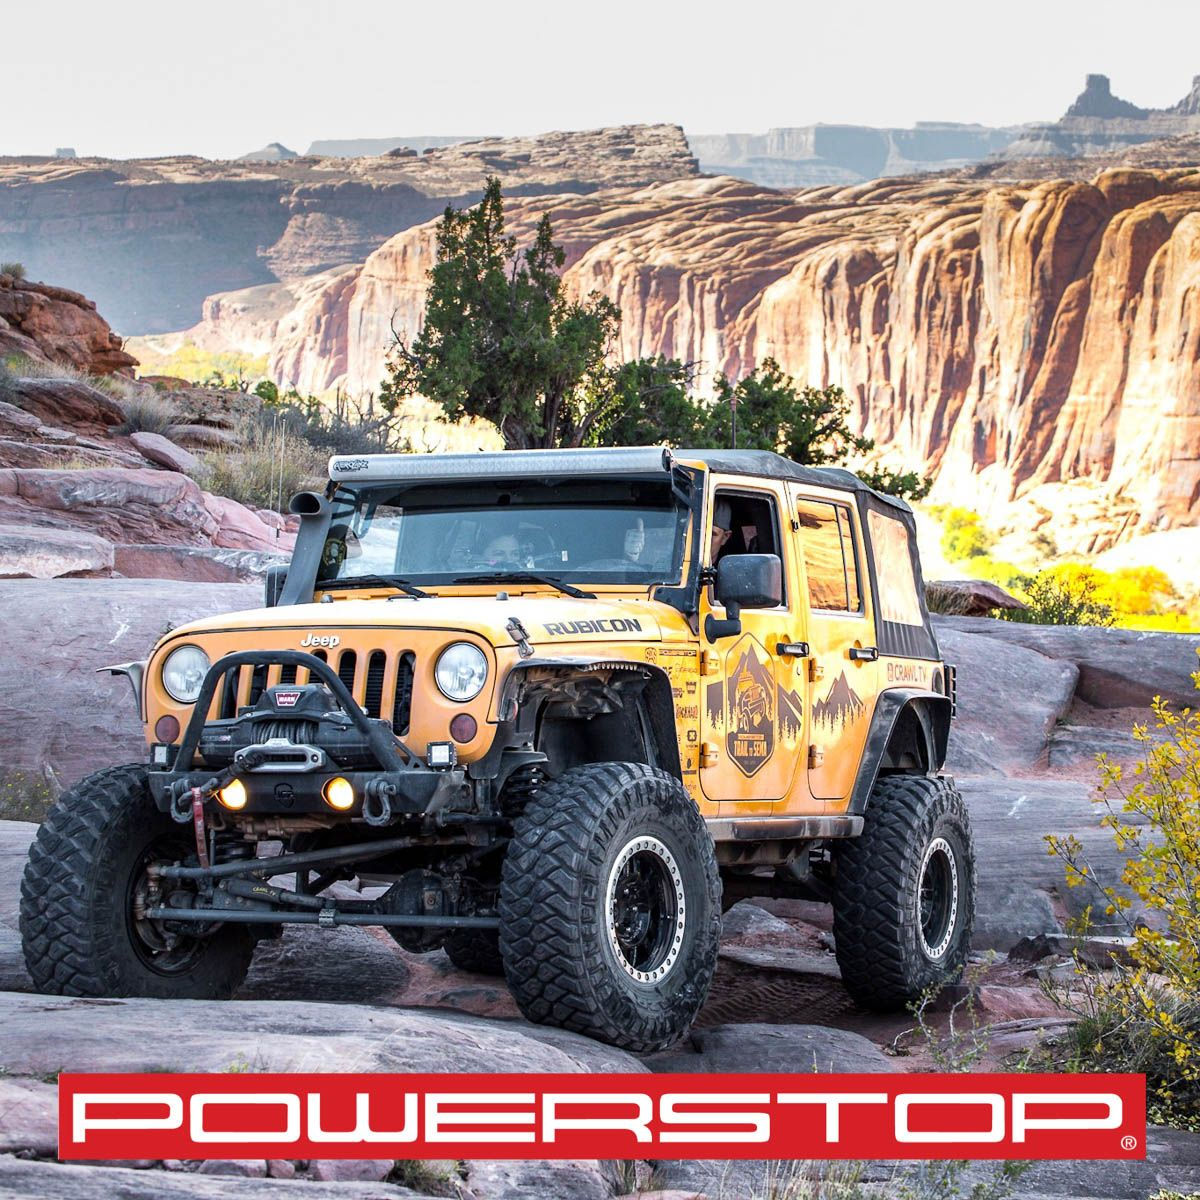 2018 The Powerstop Trail To Sema Recap Power Stop Jeep Trails Trail